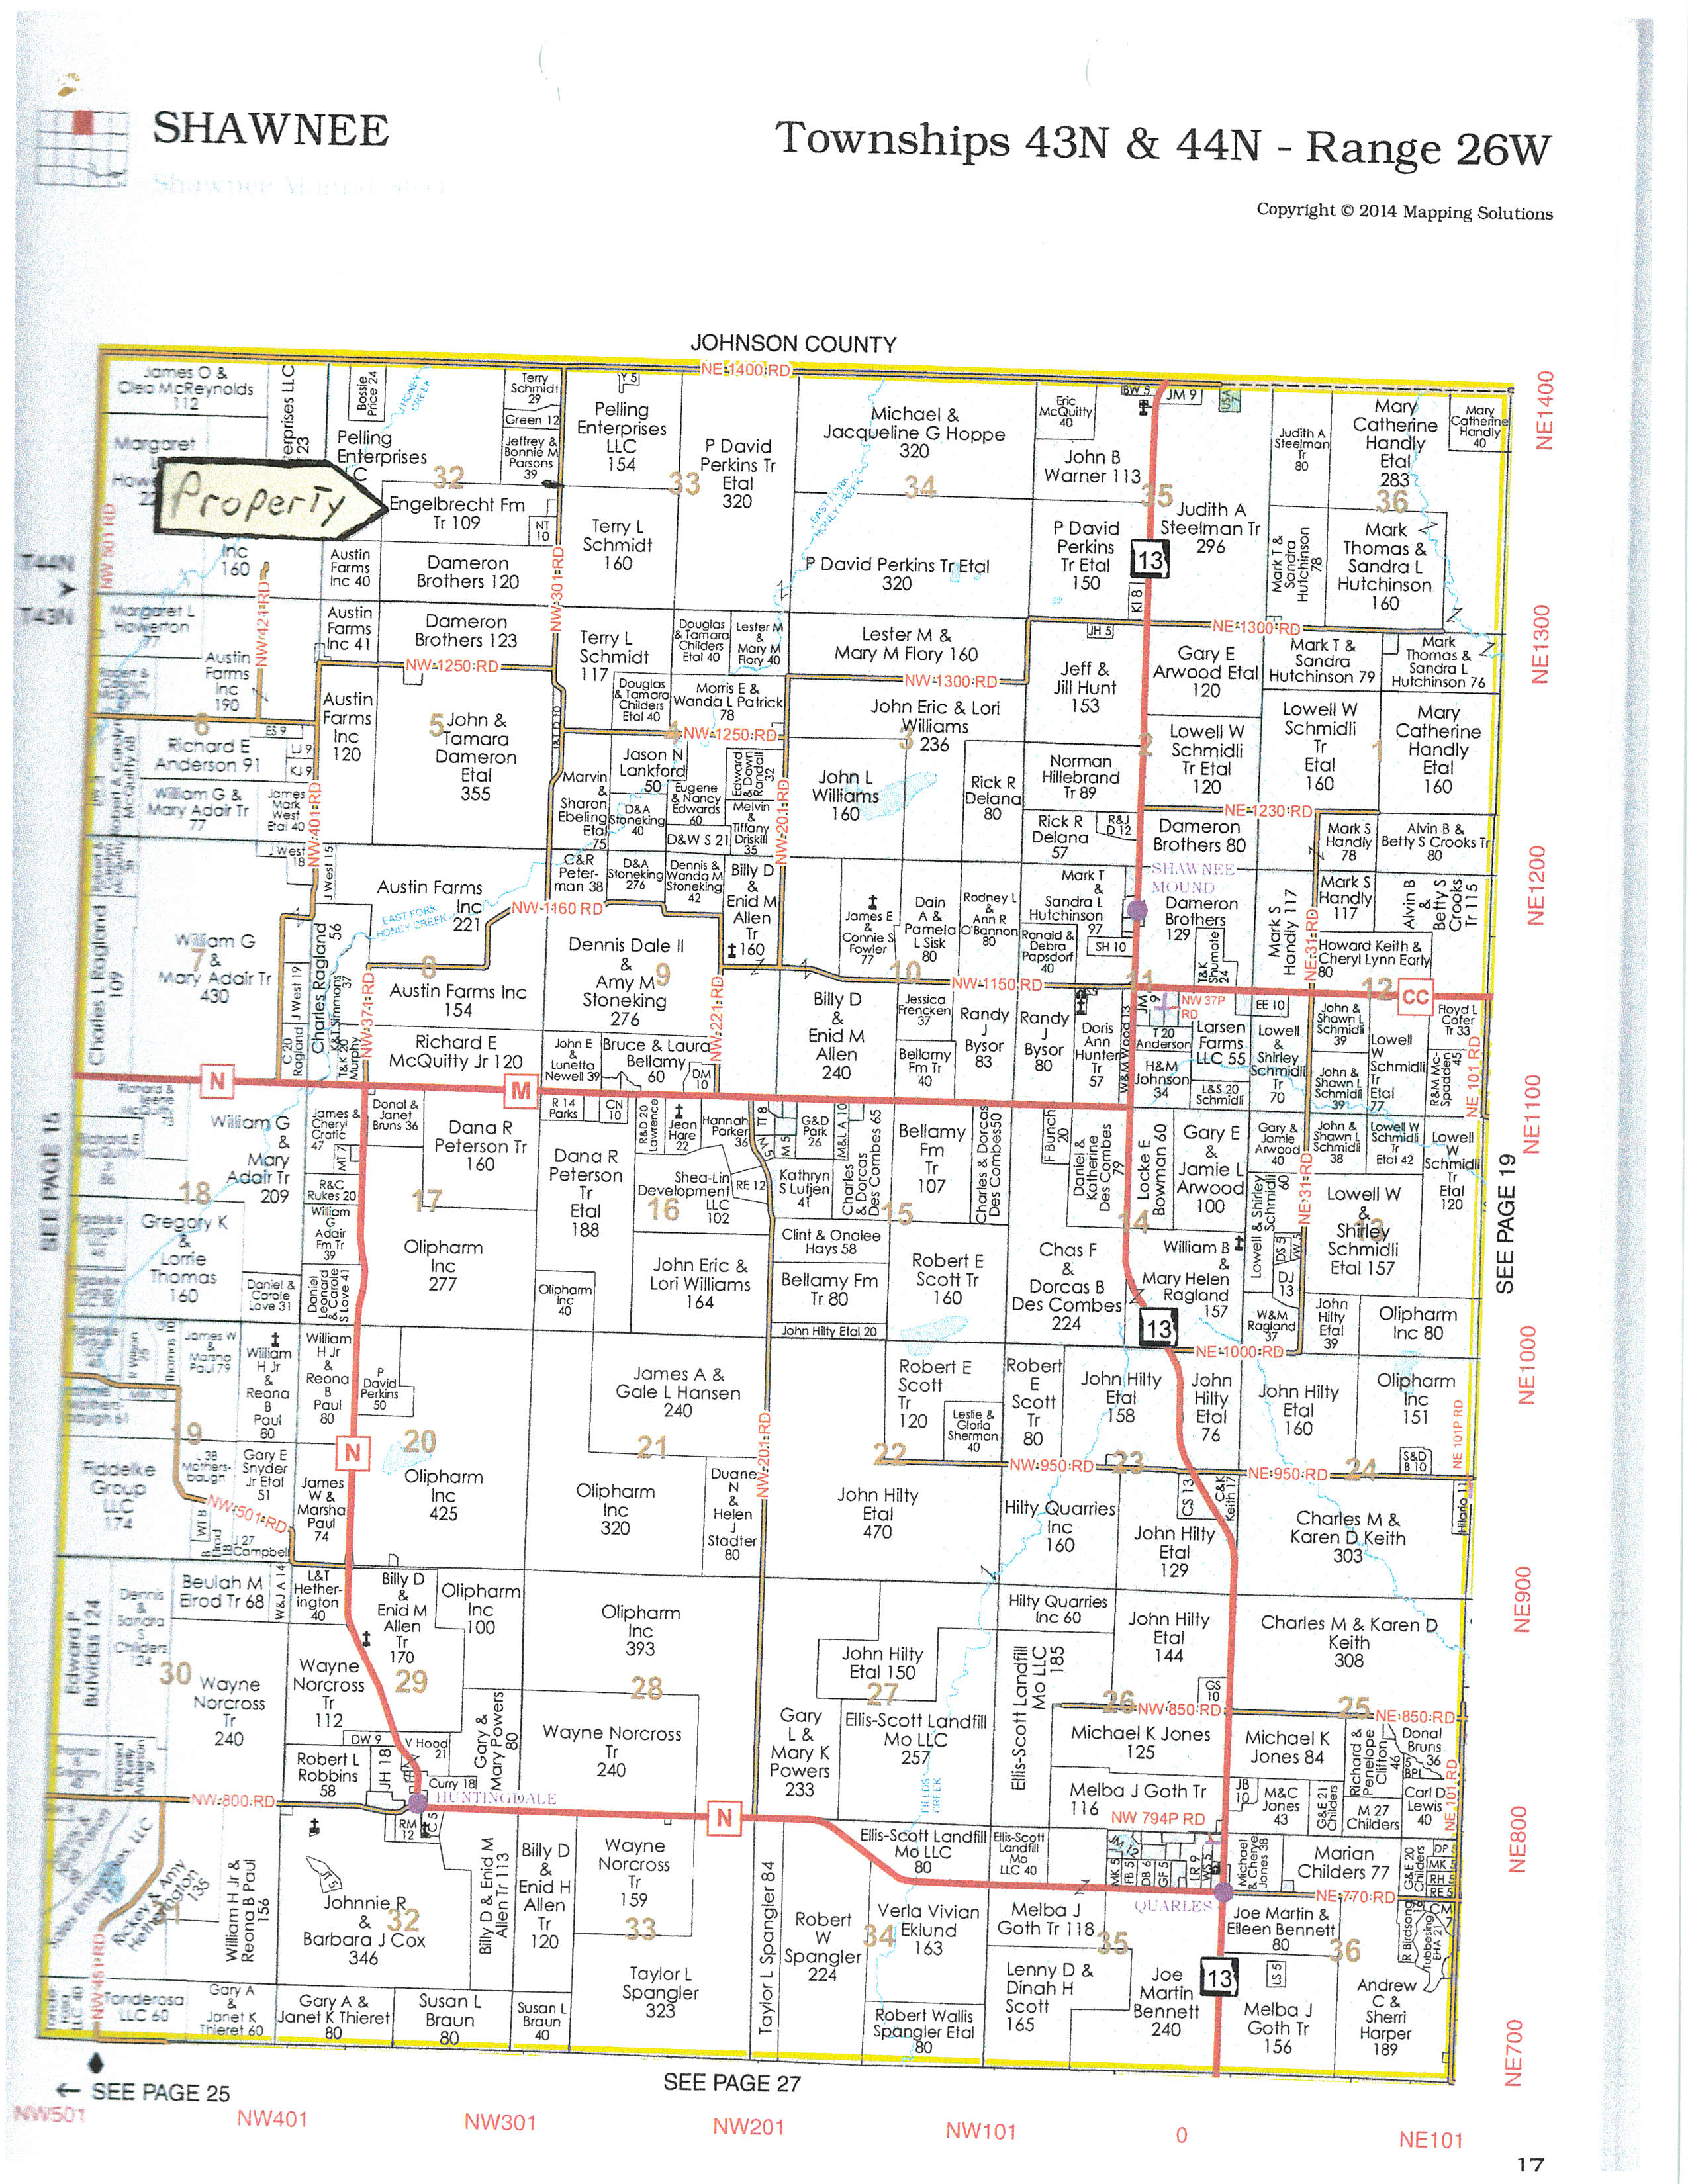 plat.jpg - 109 acres of Farm for sale. NW 301 Rd, Chilhowee, MO